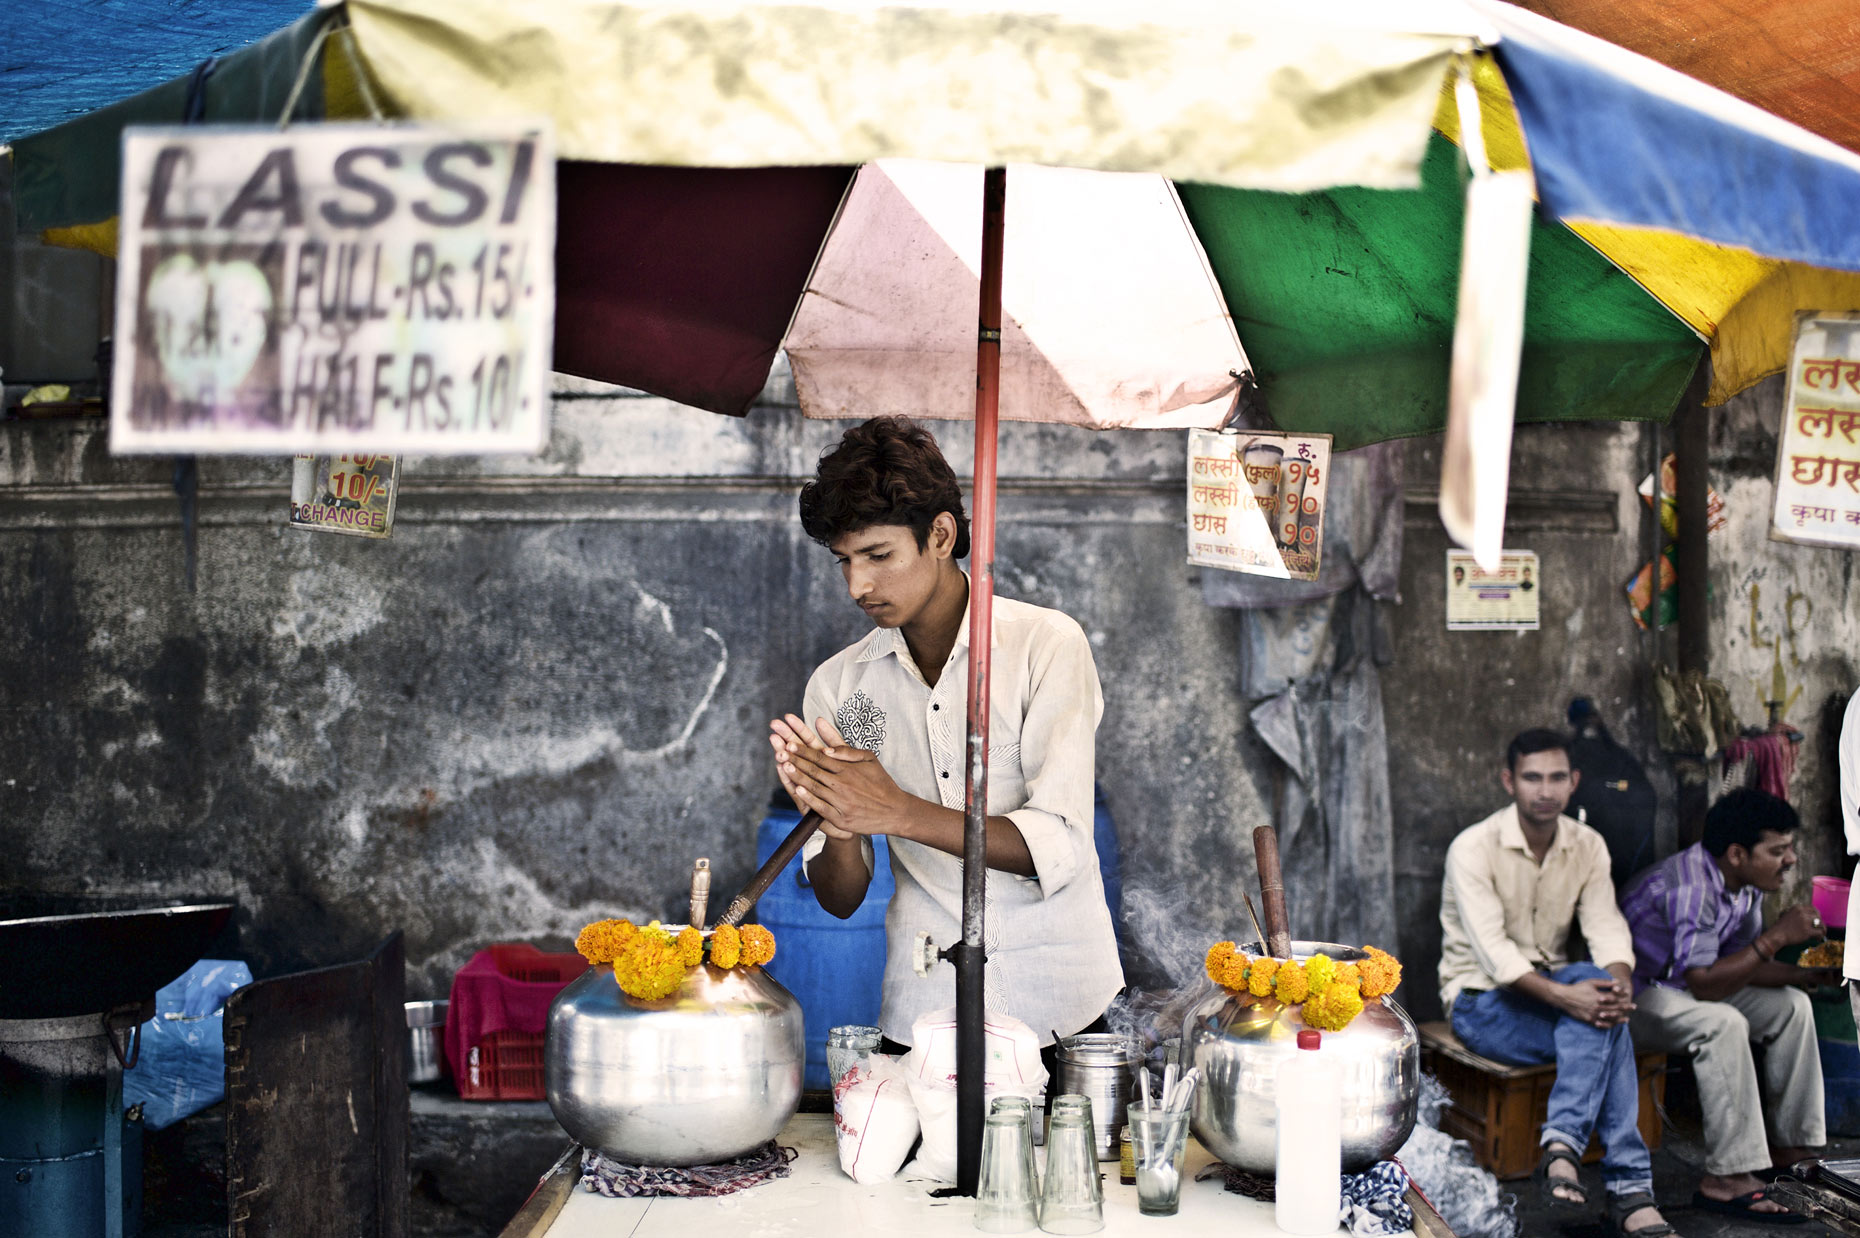 Street vendor by UK lifestyle photographer Andy Smith